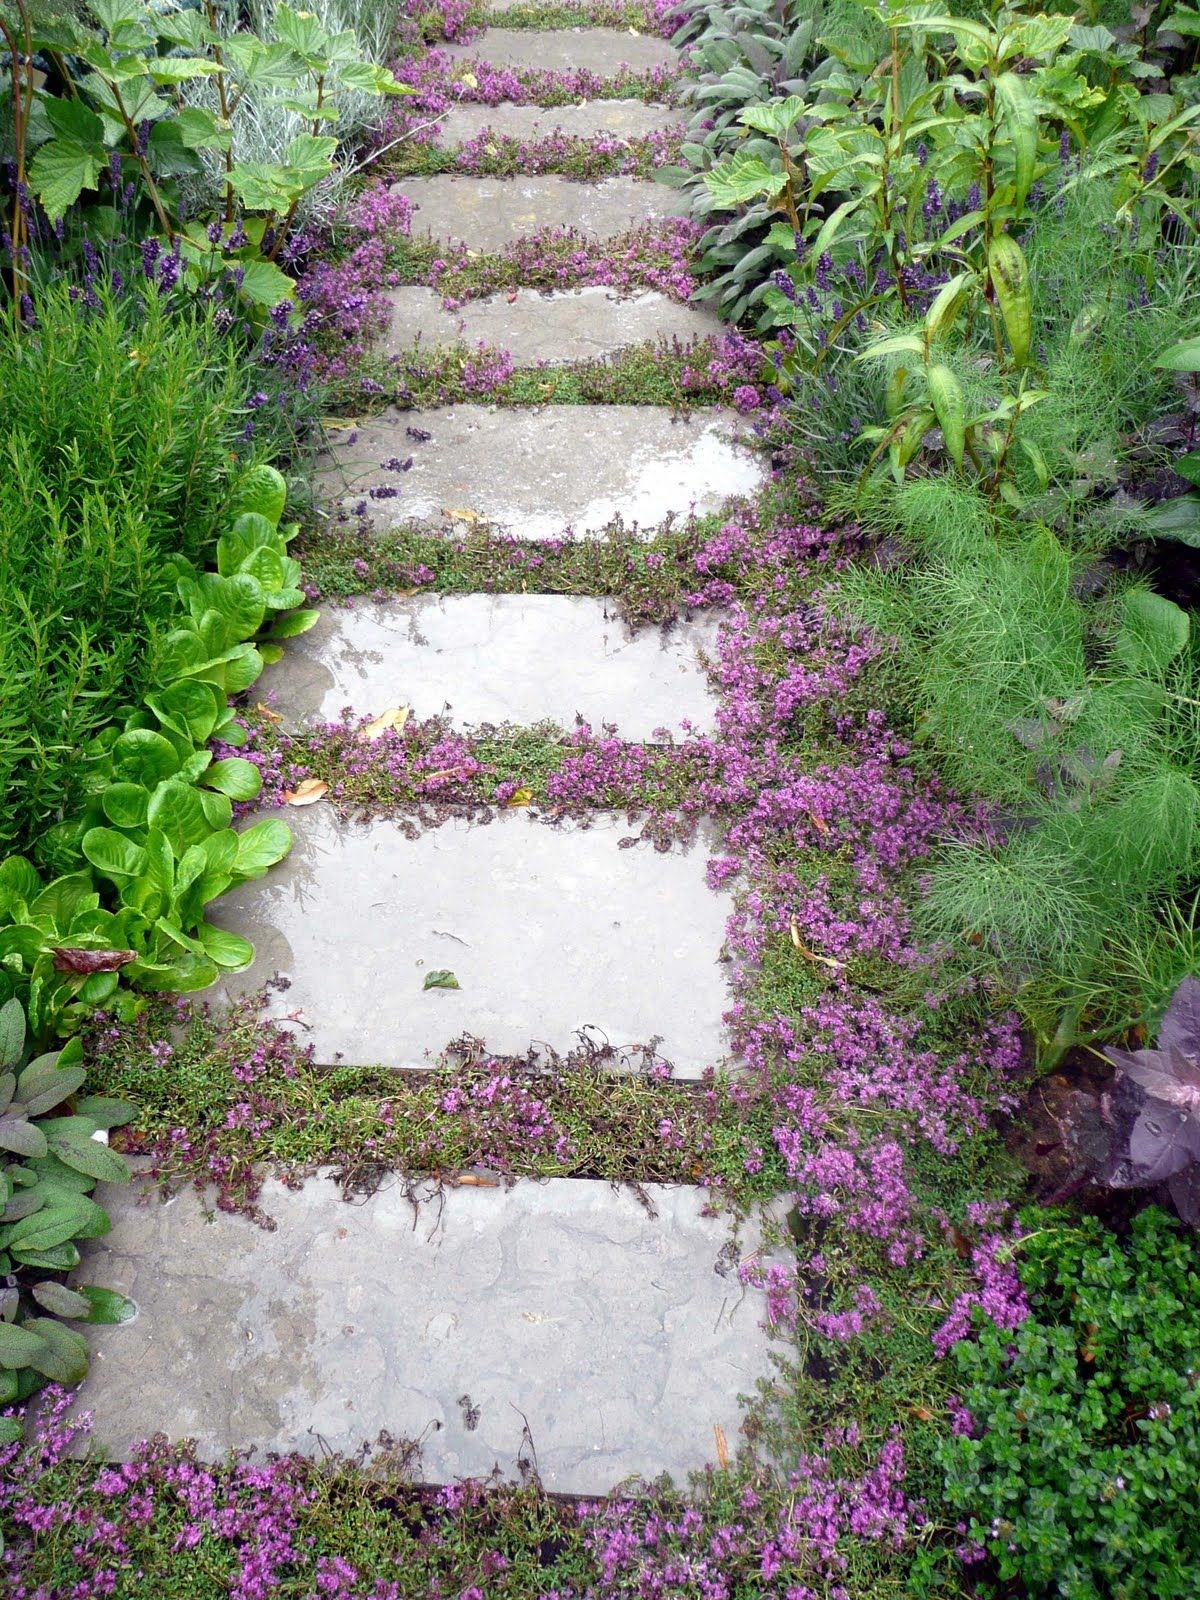 How to plant ground cover between pavers - Top 10 Plants And Ground Cover For Your Paths And Walkways